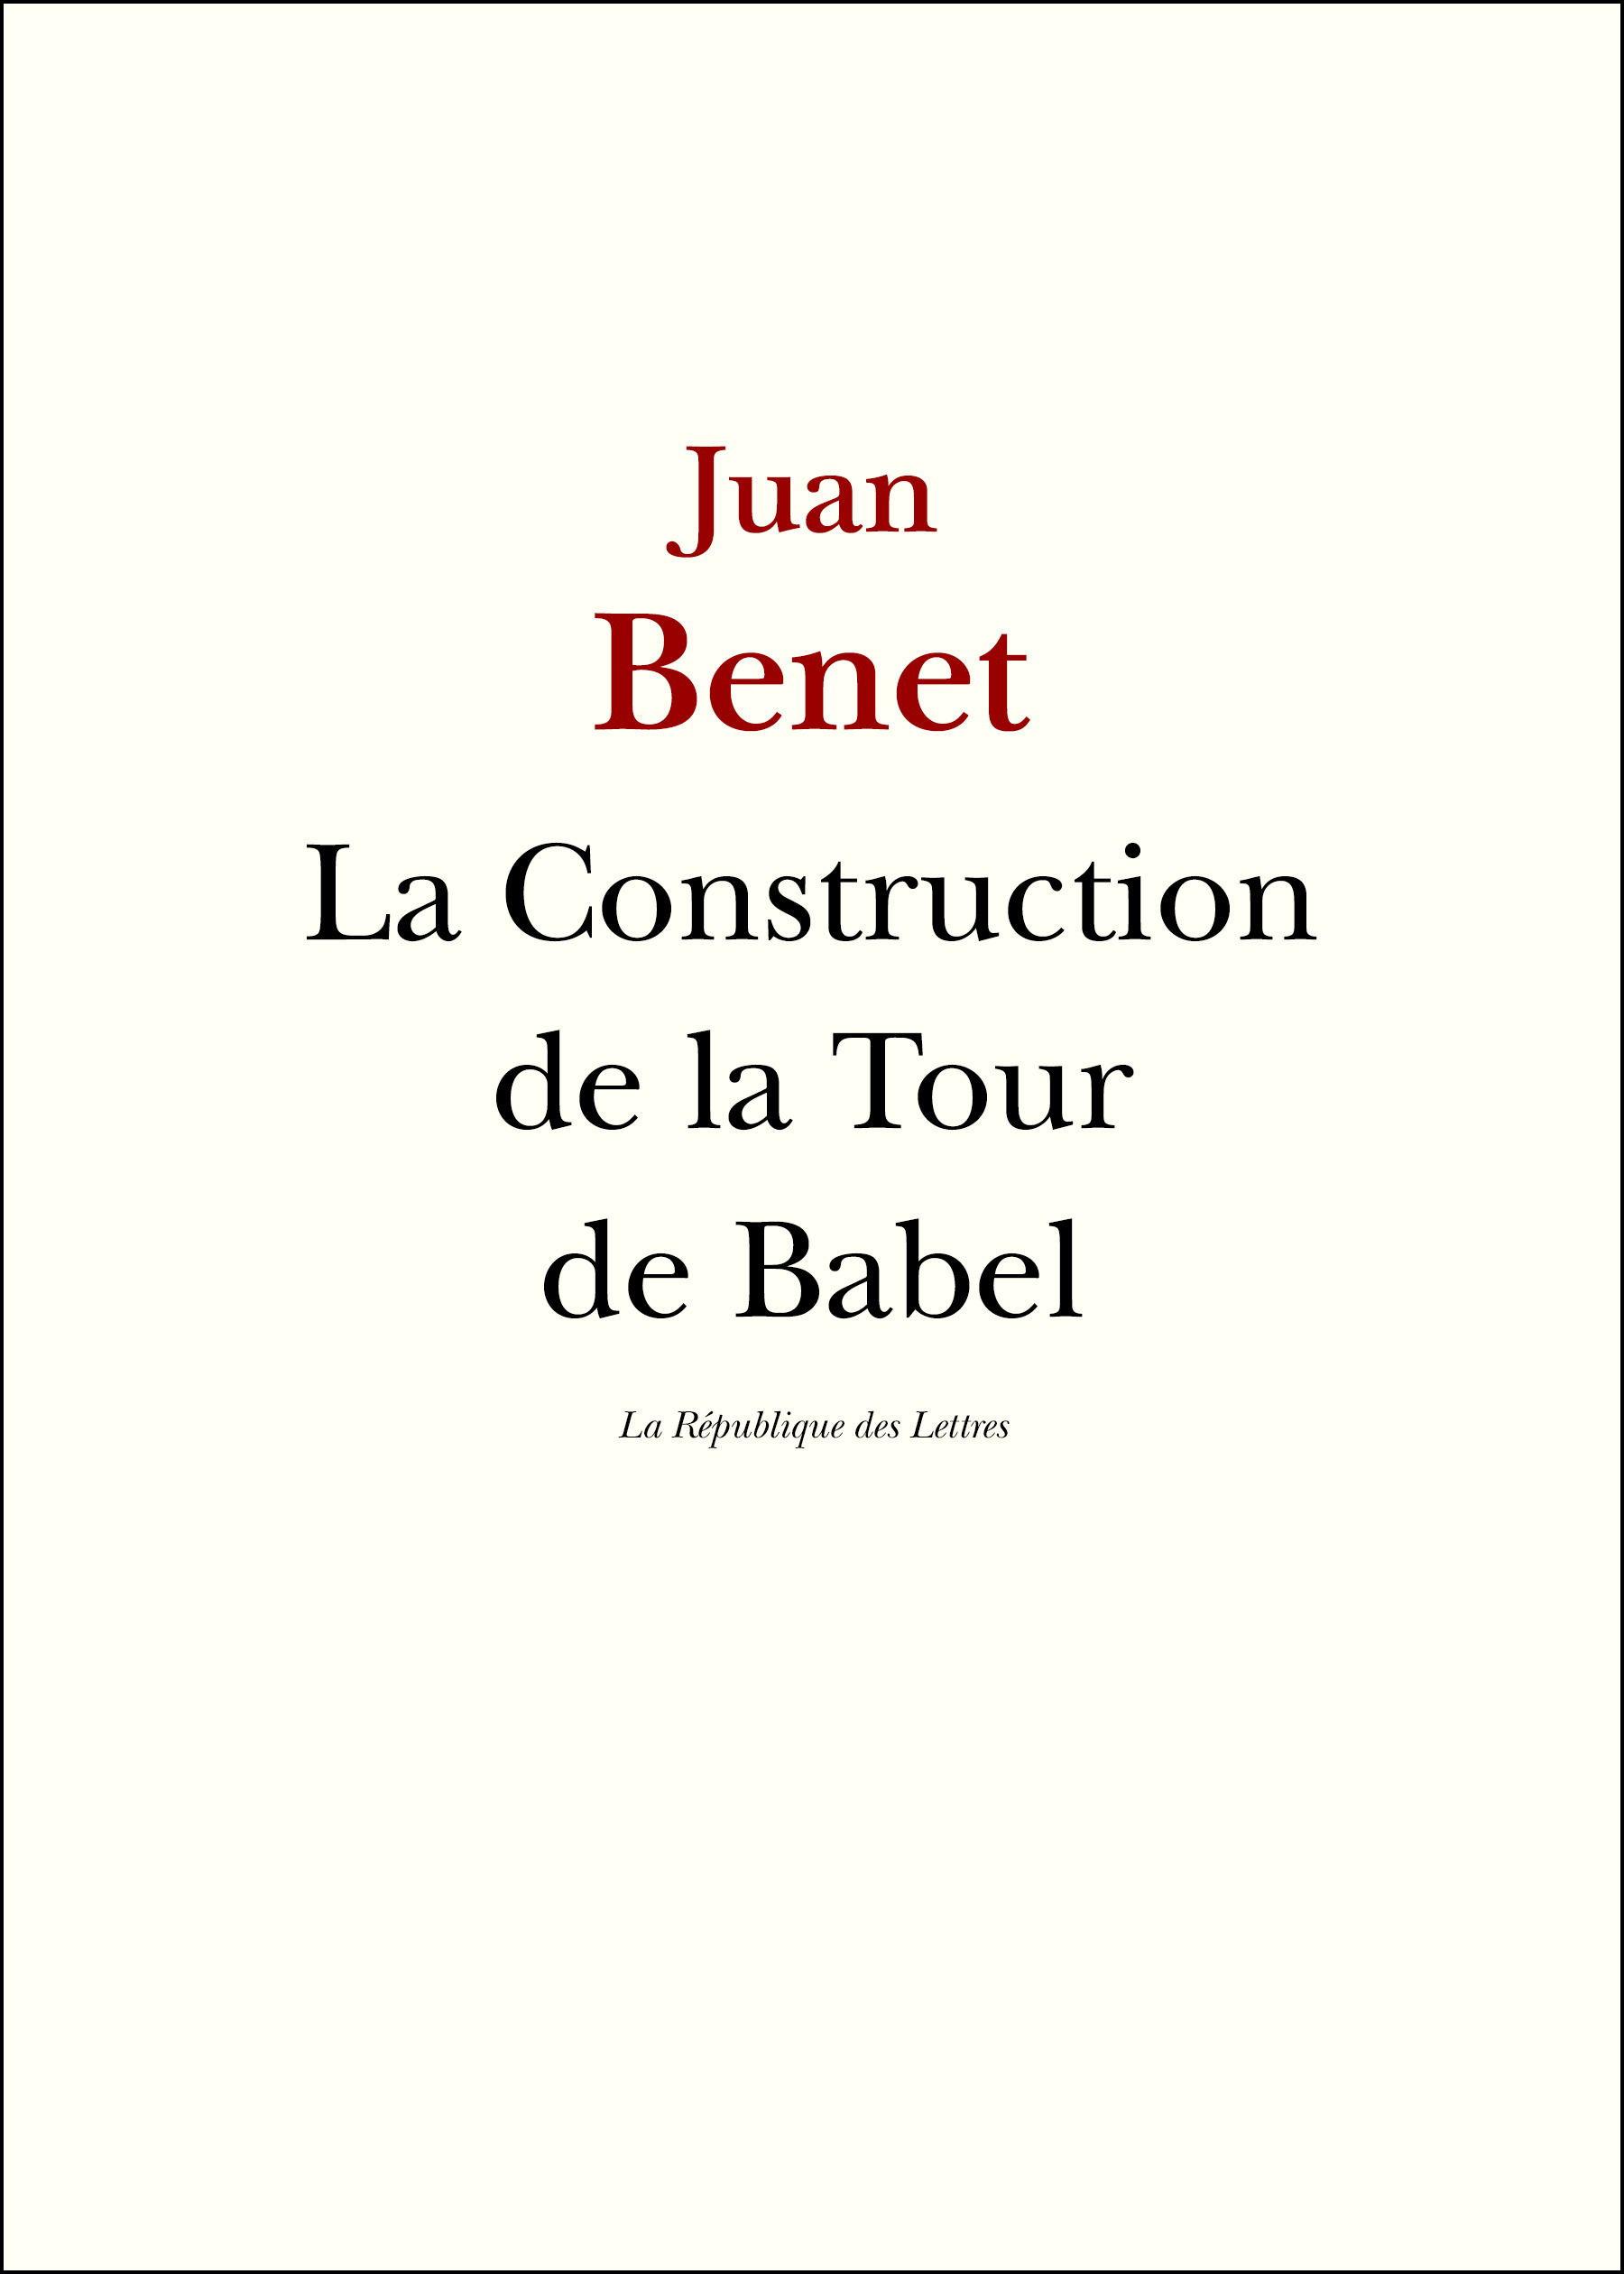 La Construction de la Tour de Babel